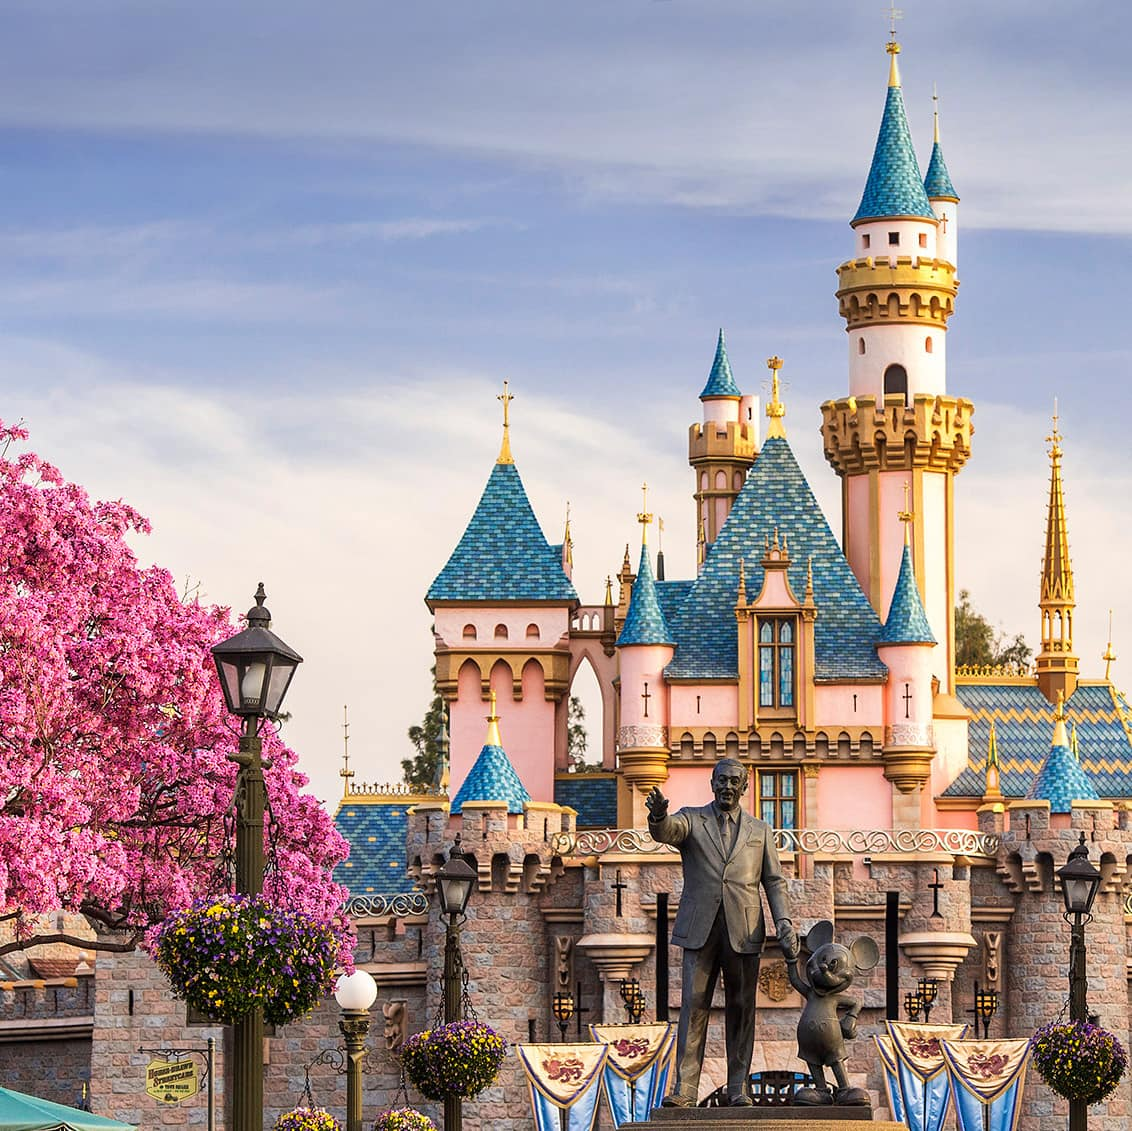 Flowering trees flank the Partners Statue of Walt Disney and Mickey Mouse and Sleeping Beauty Castle